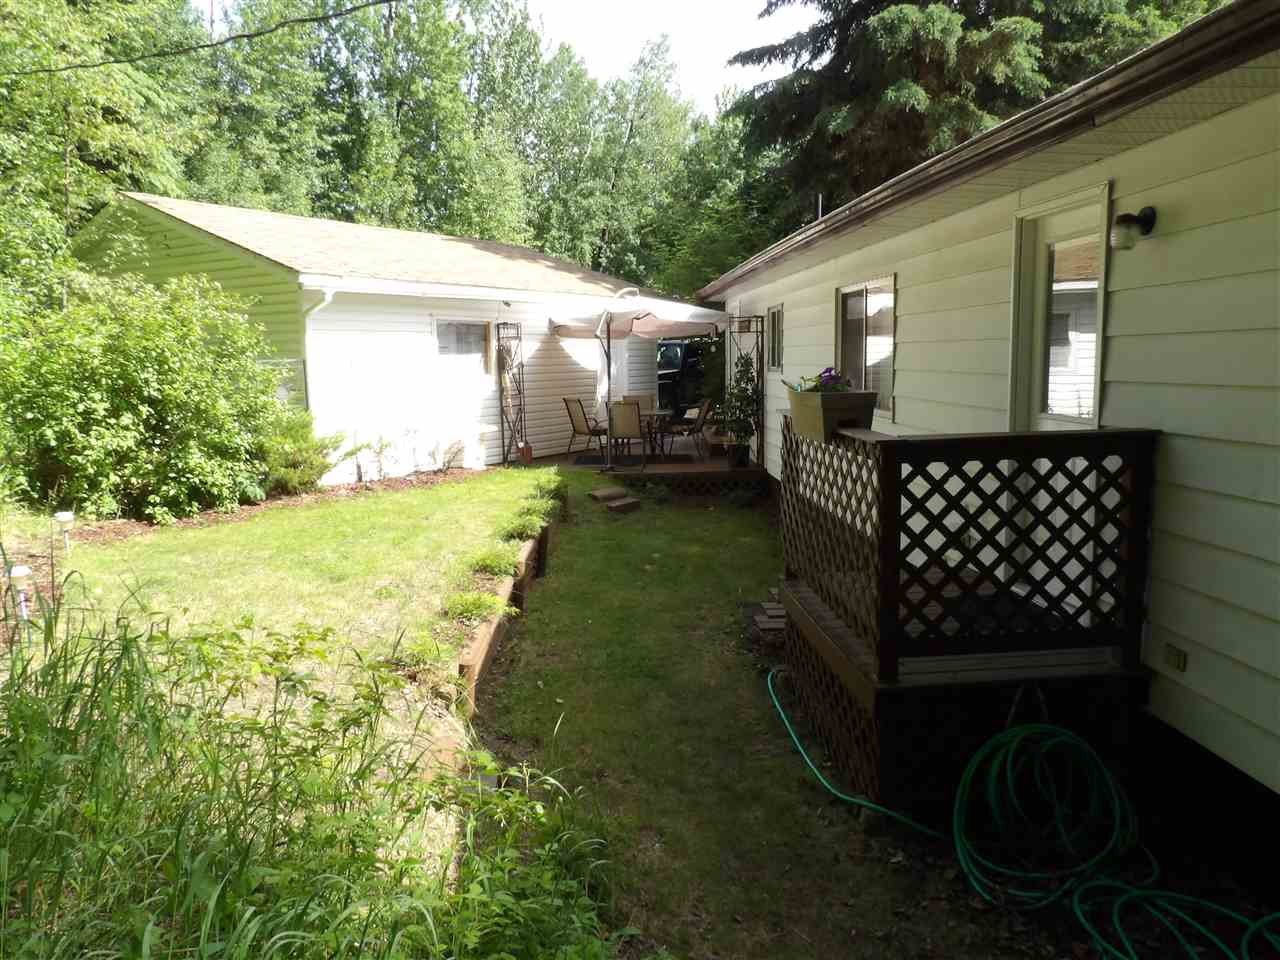 Photo 3: 1401 TWP RD 540 Road: Rural Parkland County House for sale : MLS® # E4068749